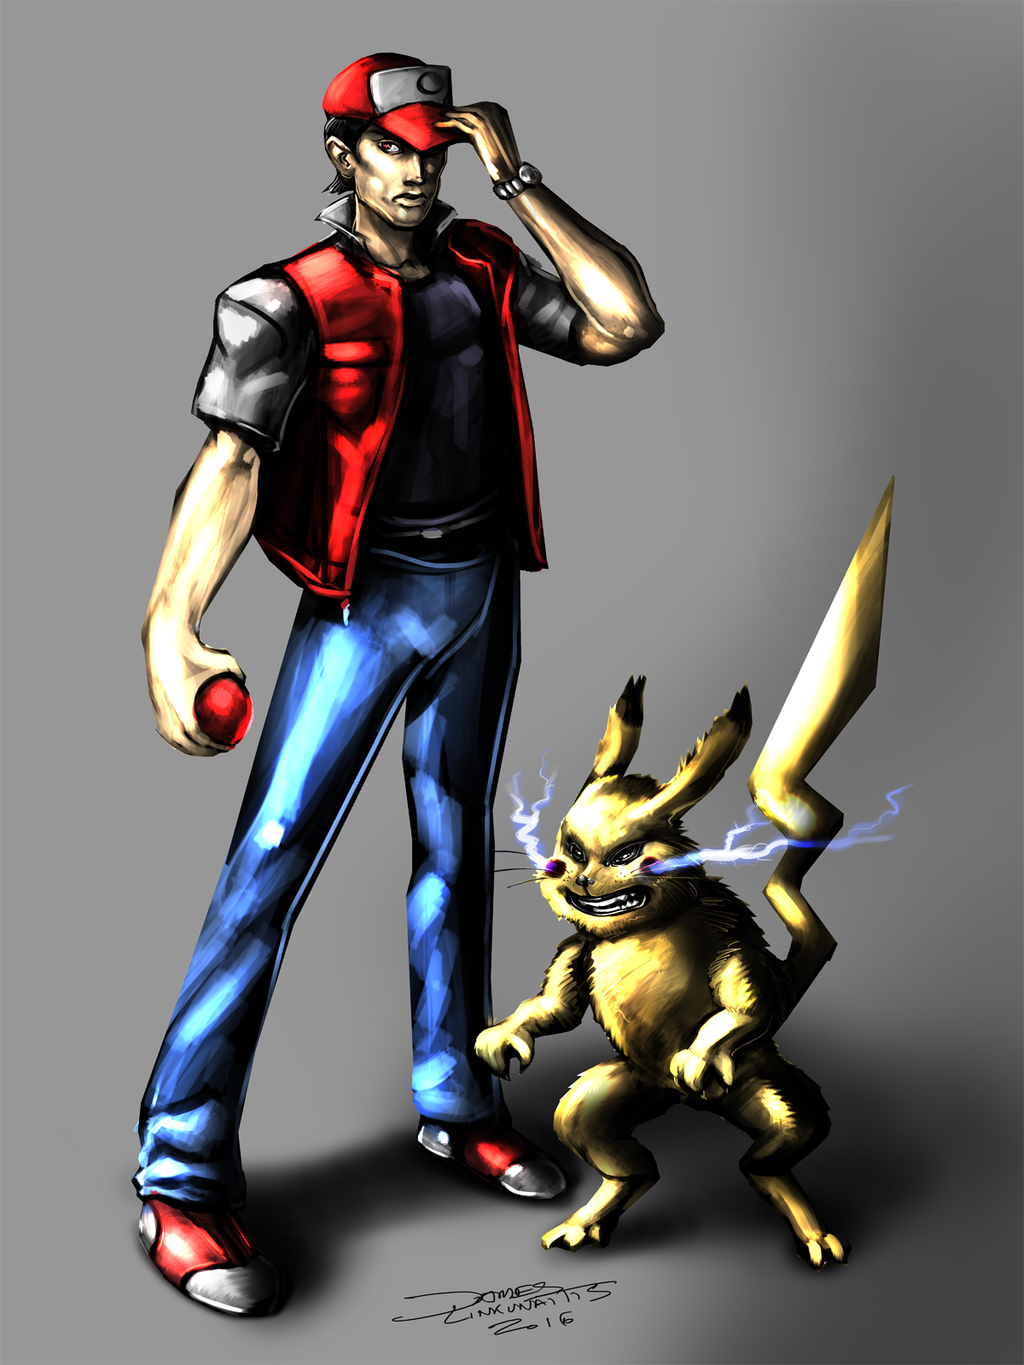 ash and pikachu years later pokemon by jameslink on deviantart